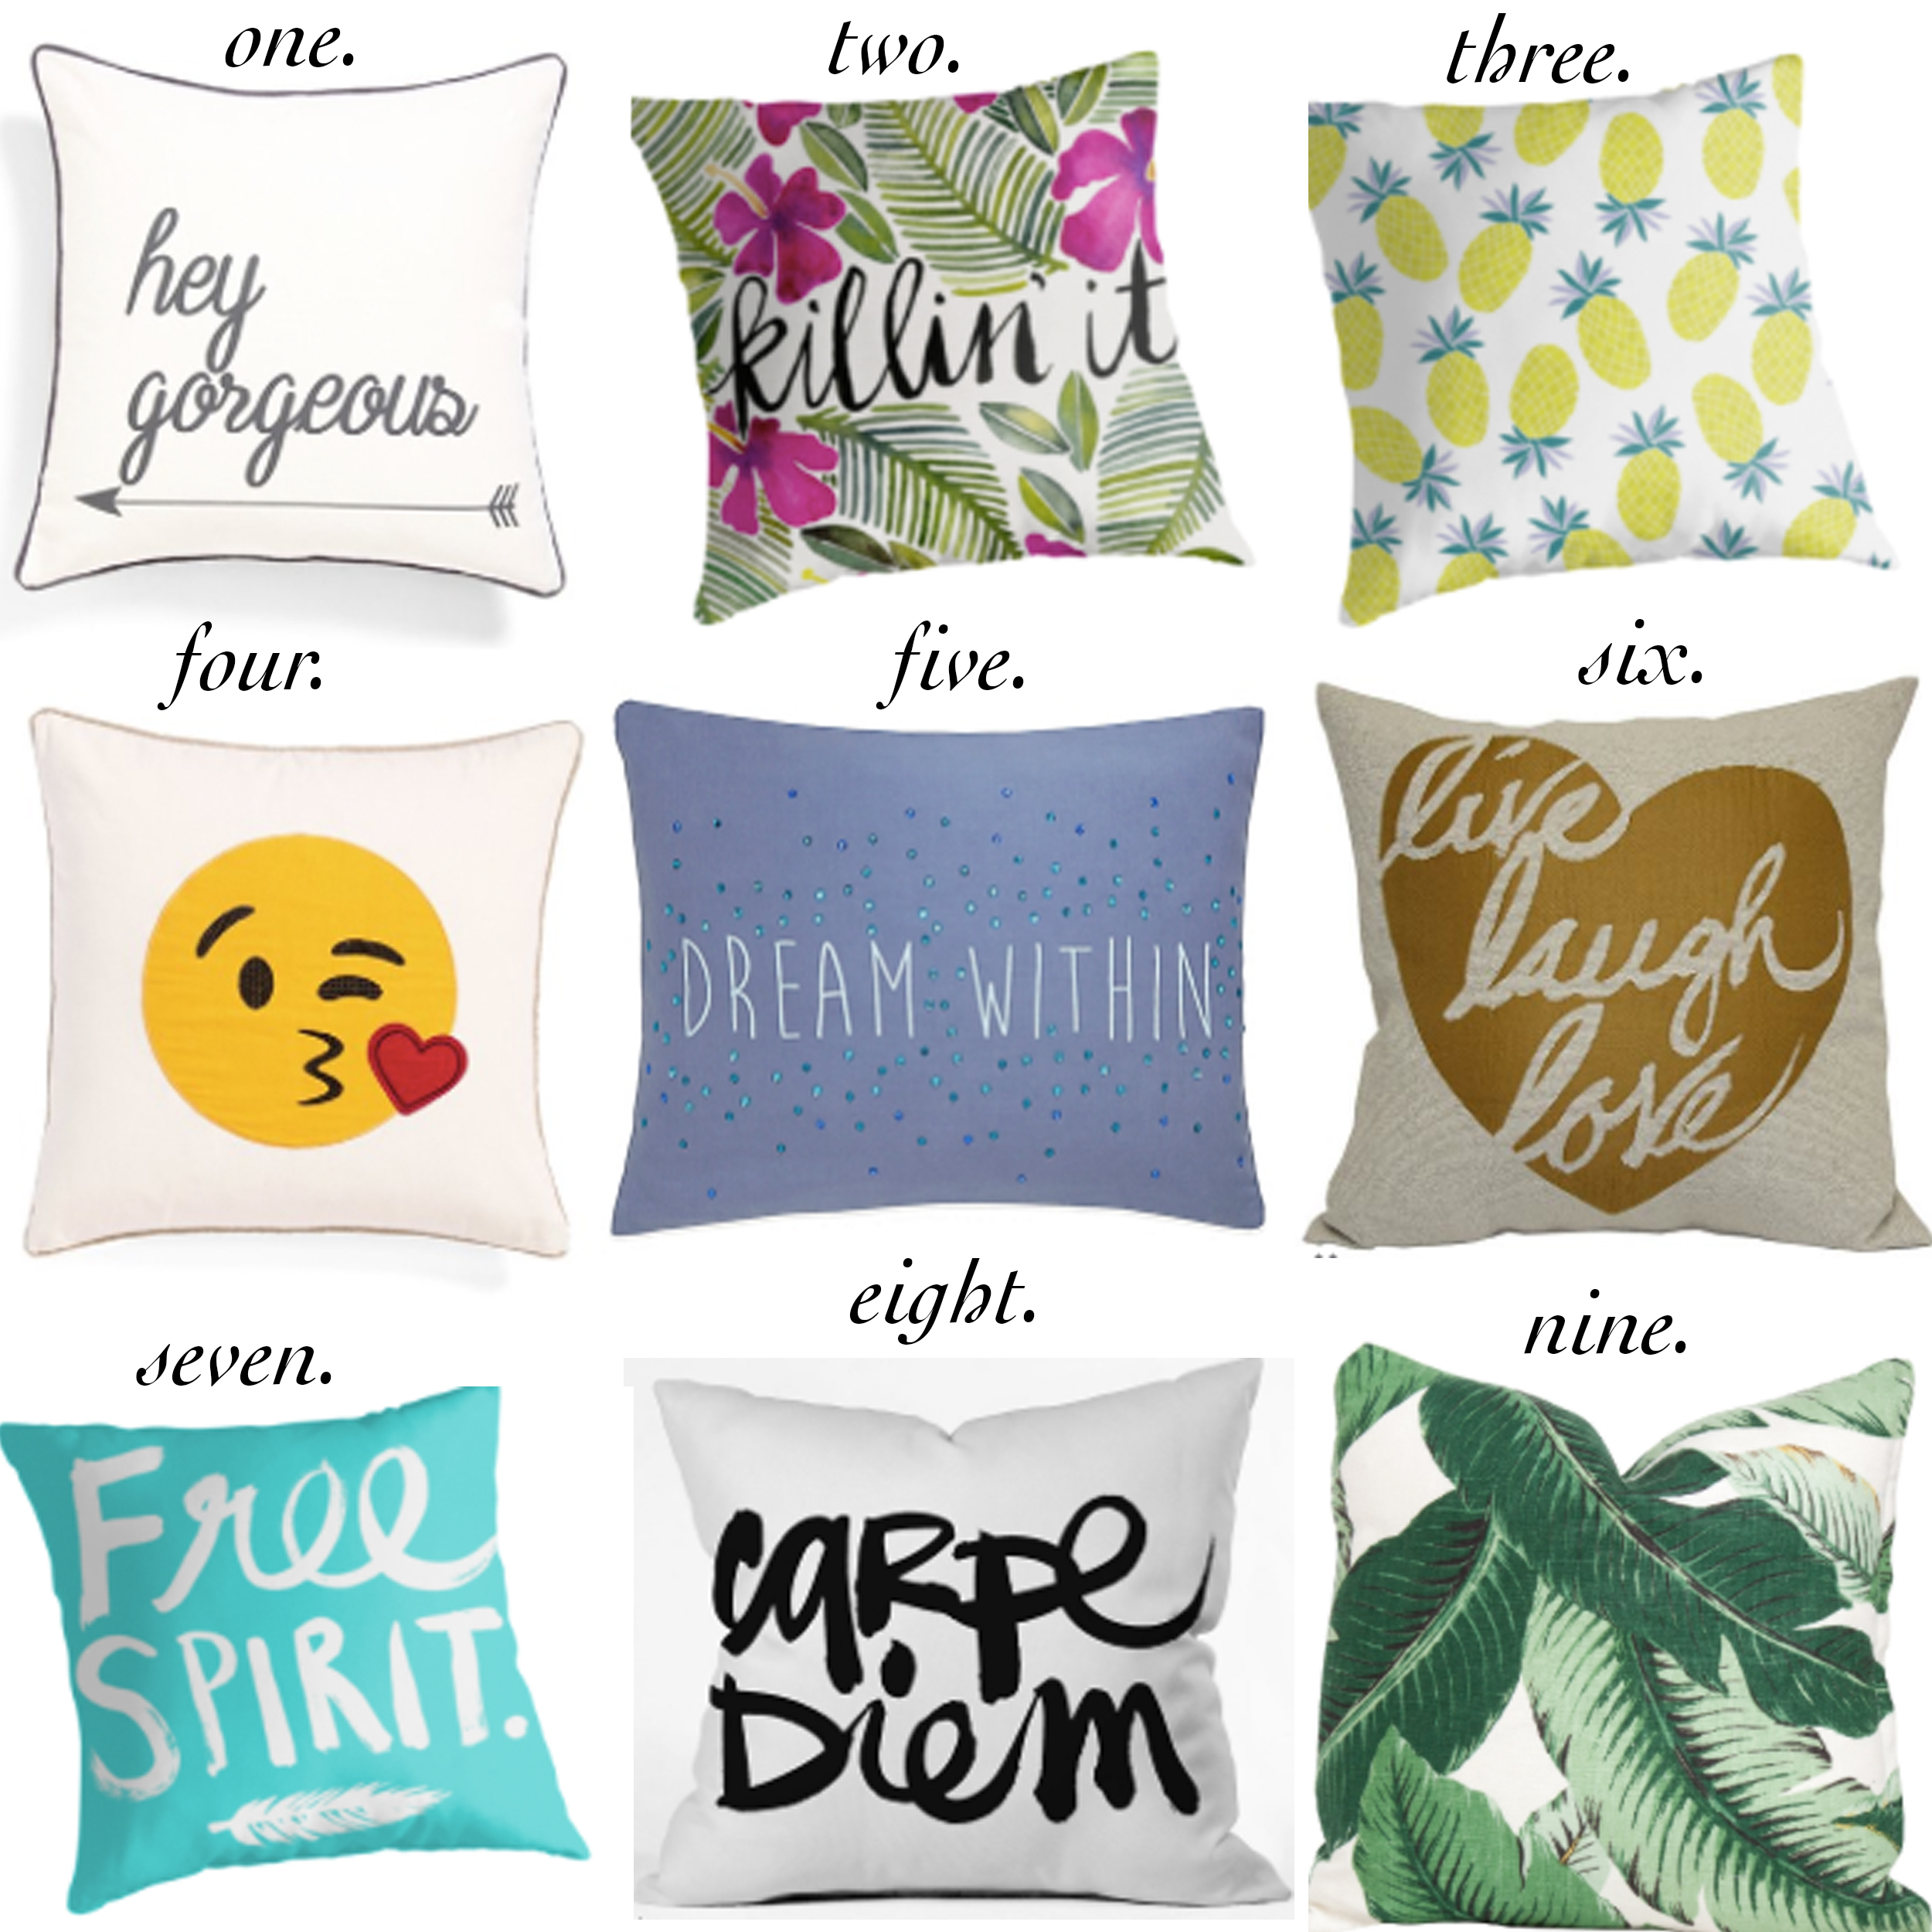 missyonmadison, melissa tierney, throw pillows, interior design, interior inspo, decorative pillows, under the canopy, redbubble, quote pillows, quote decor, shopping guide, gift guide, free spirit, carpe diem, palm print pillow, emoji pillow, emojis,